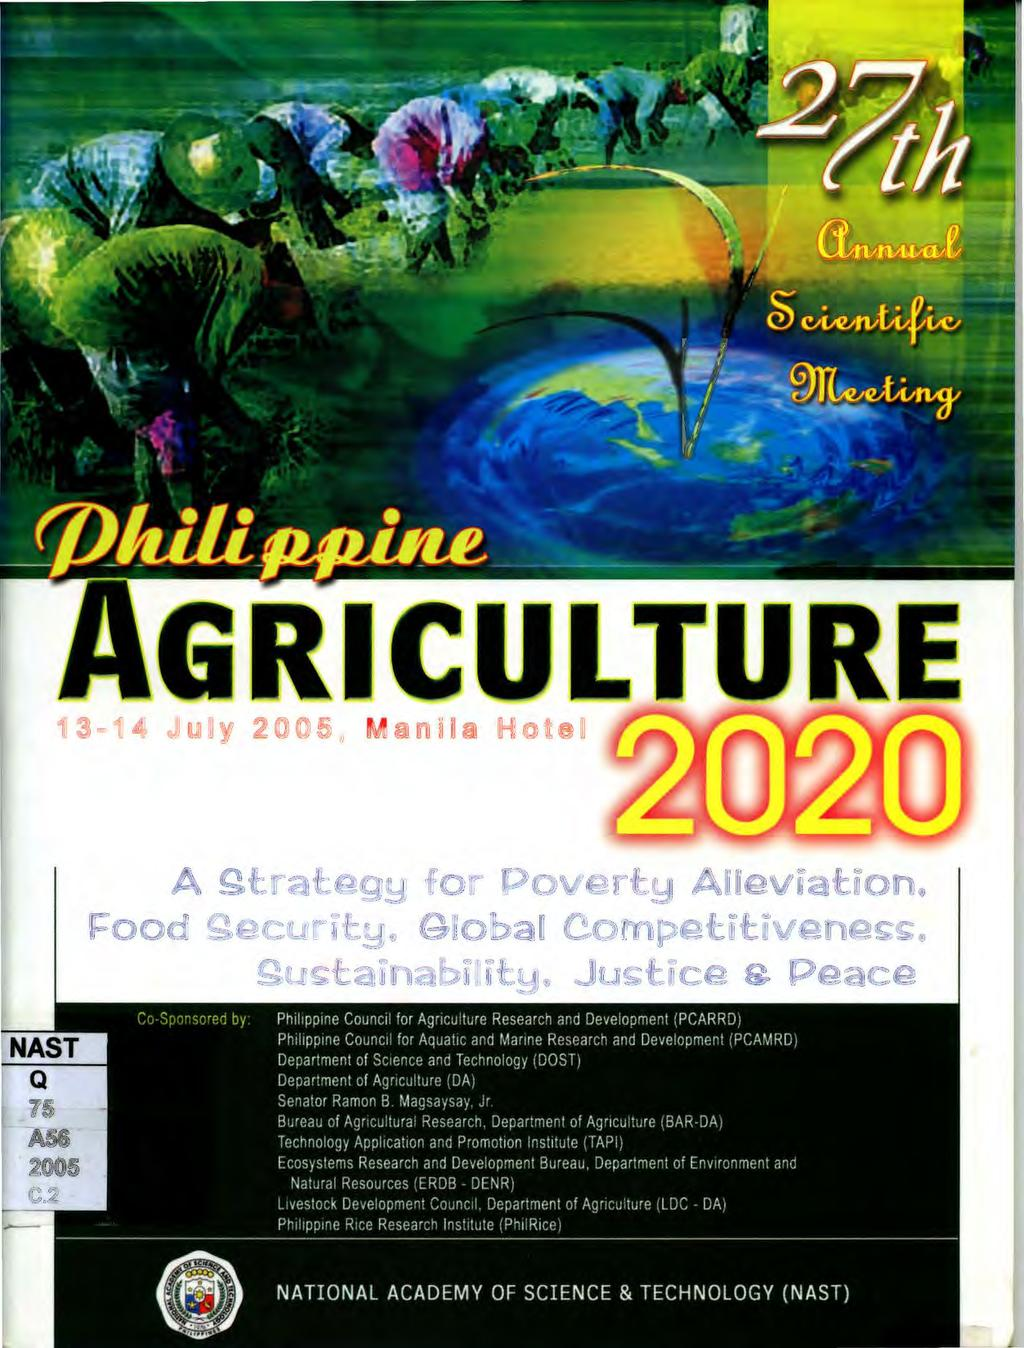 GRICULTURE  A gtrategy for Poverty Alleviation  Food